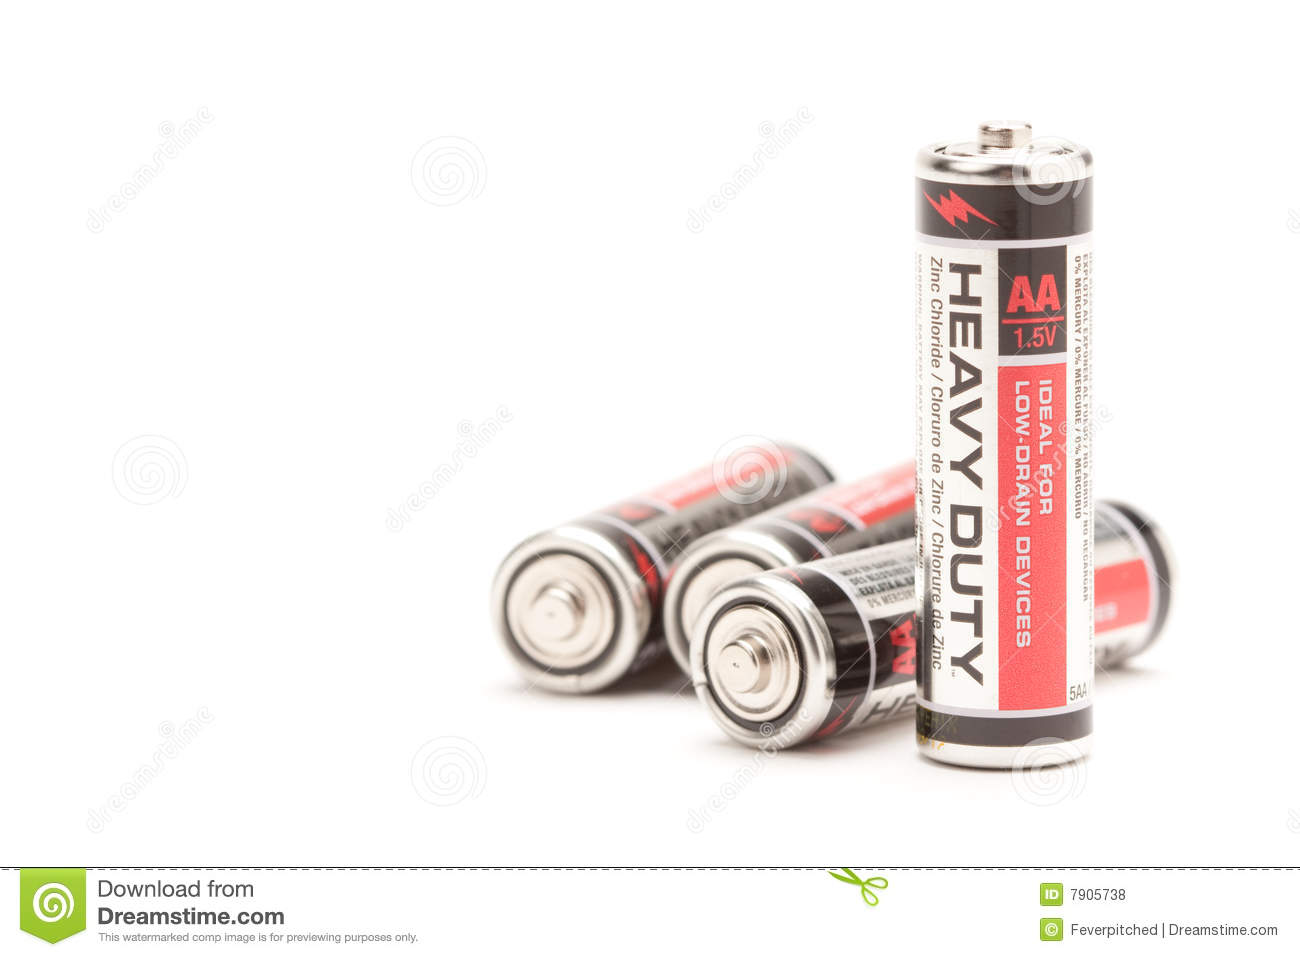 Batteries blanches